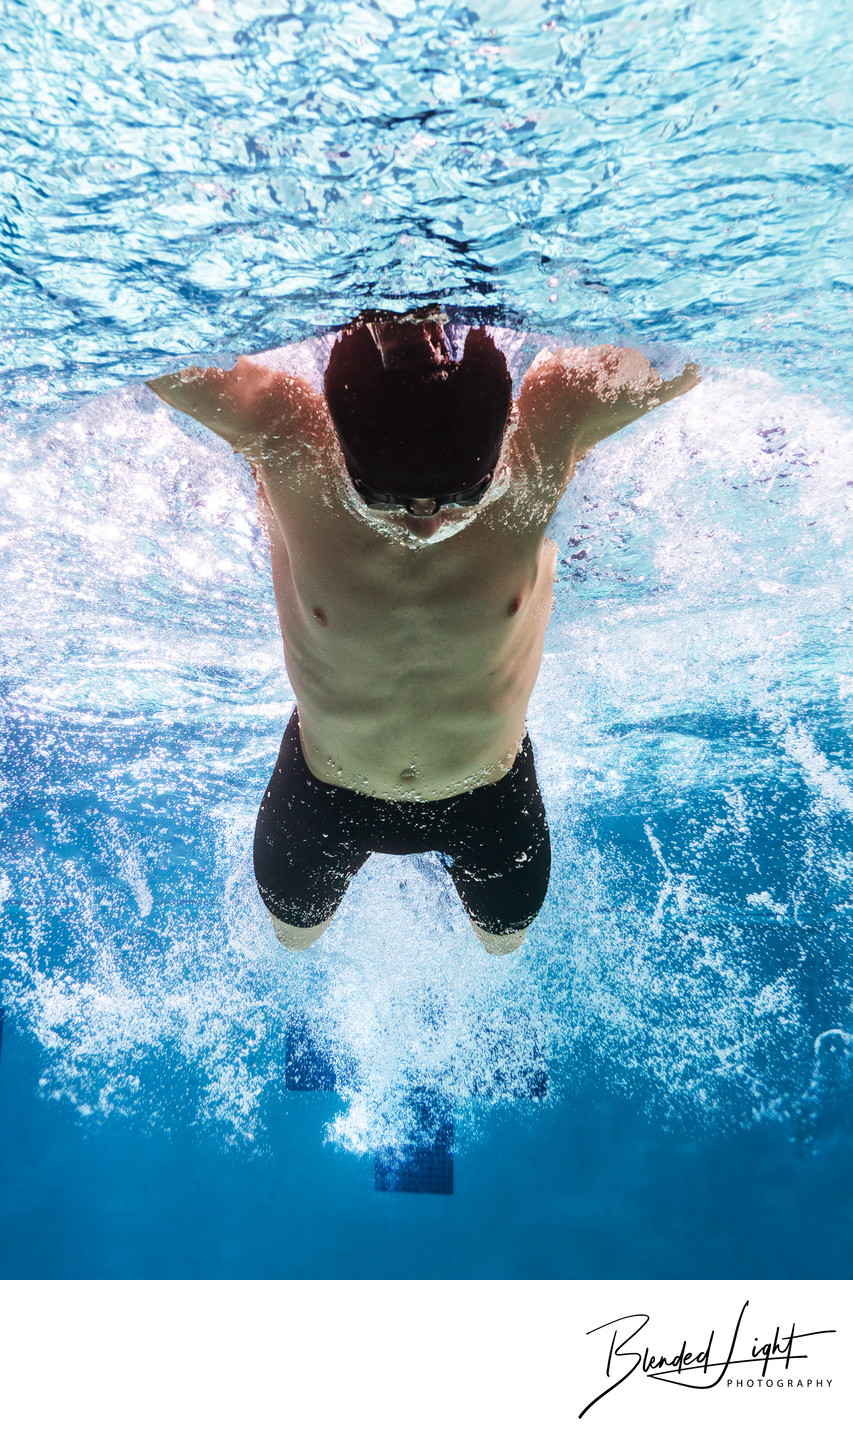 Tight Butterfly swim image of male swimmer